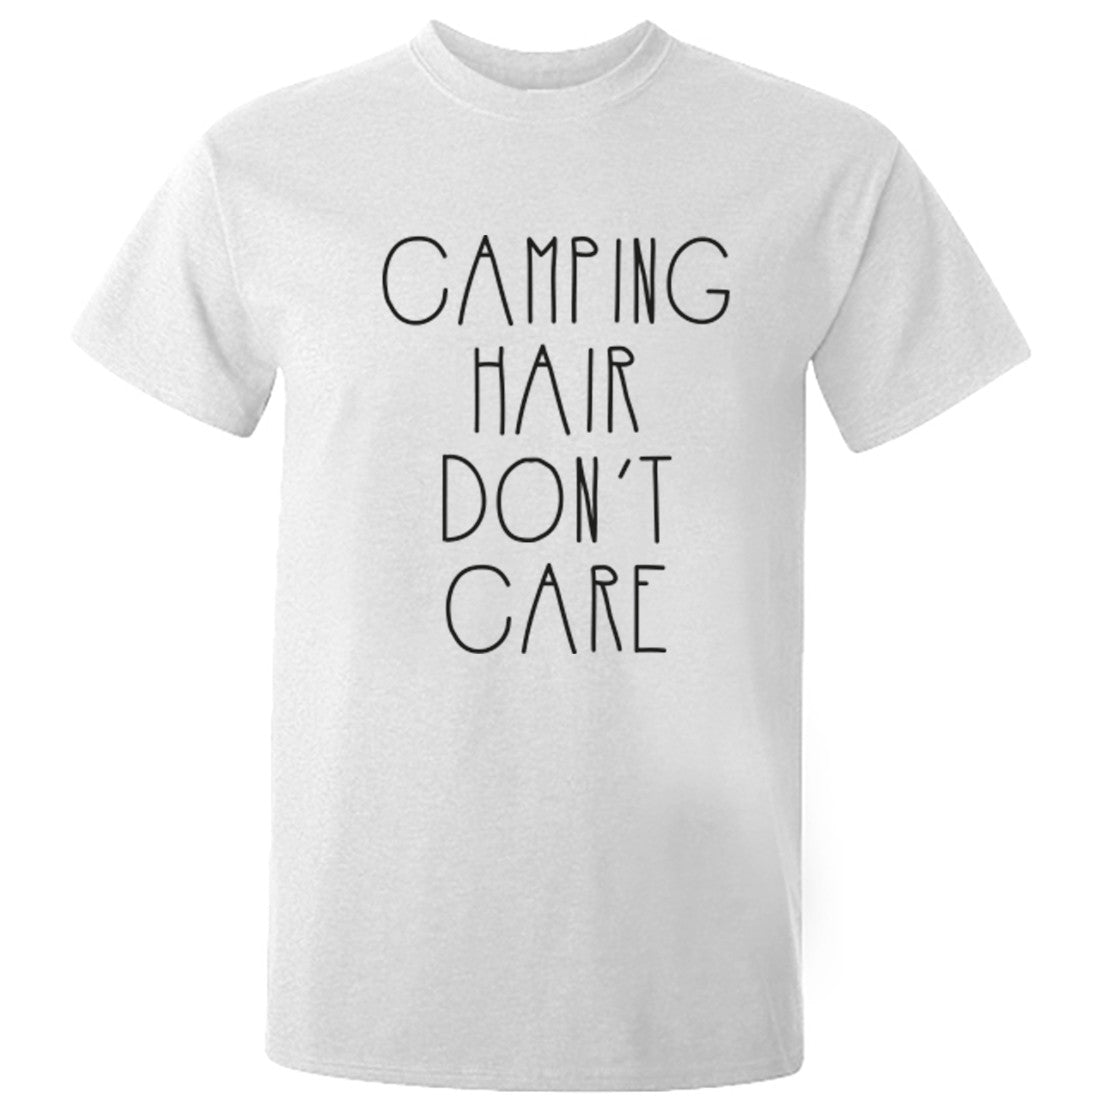 Camping Hair Don't Care Unisex Fit T-Shirt K0462